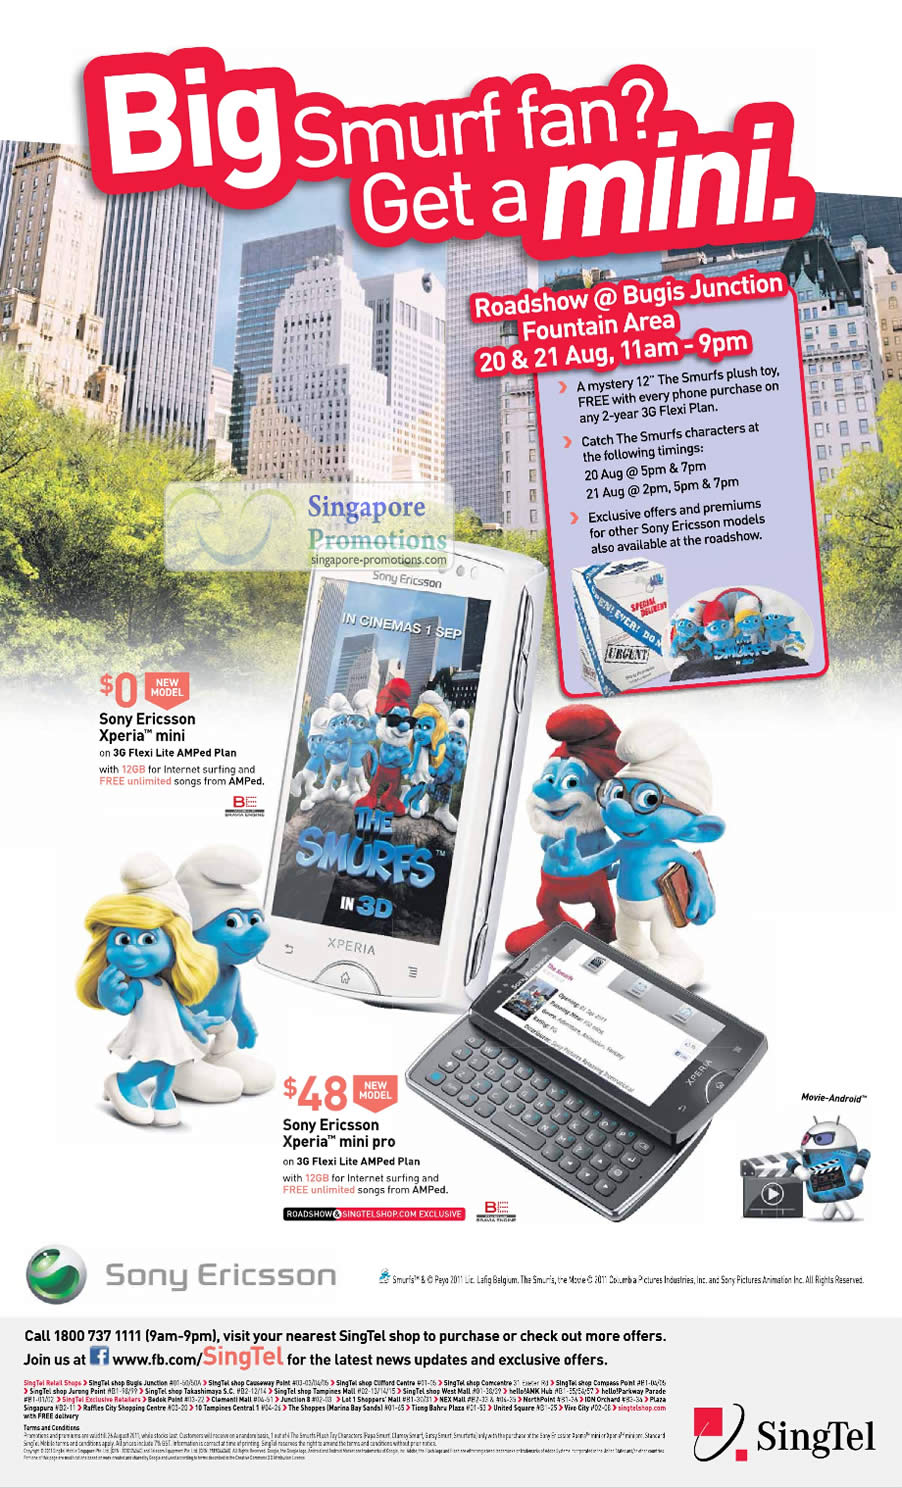 Bugis Junction Roadshow, Free Smurfs Plush Toy, Meet Smurfs Characters, Sony Ericsson Offers